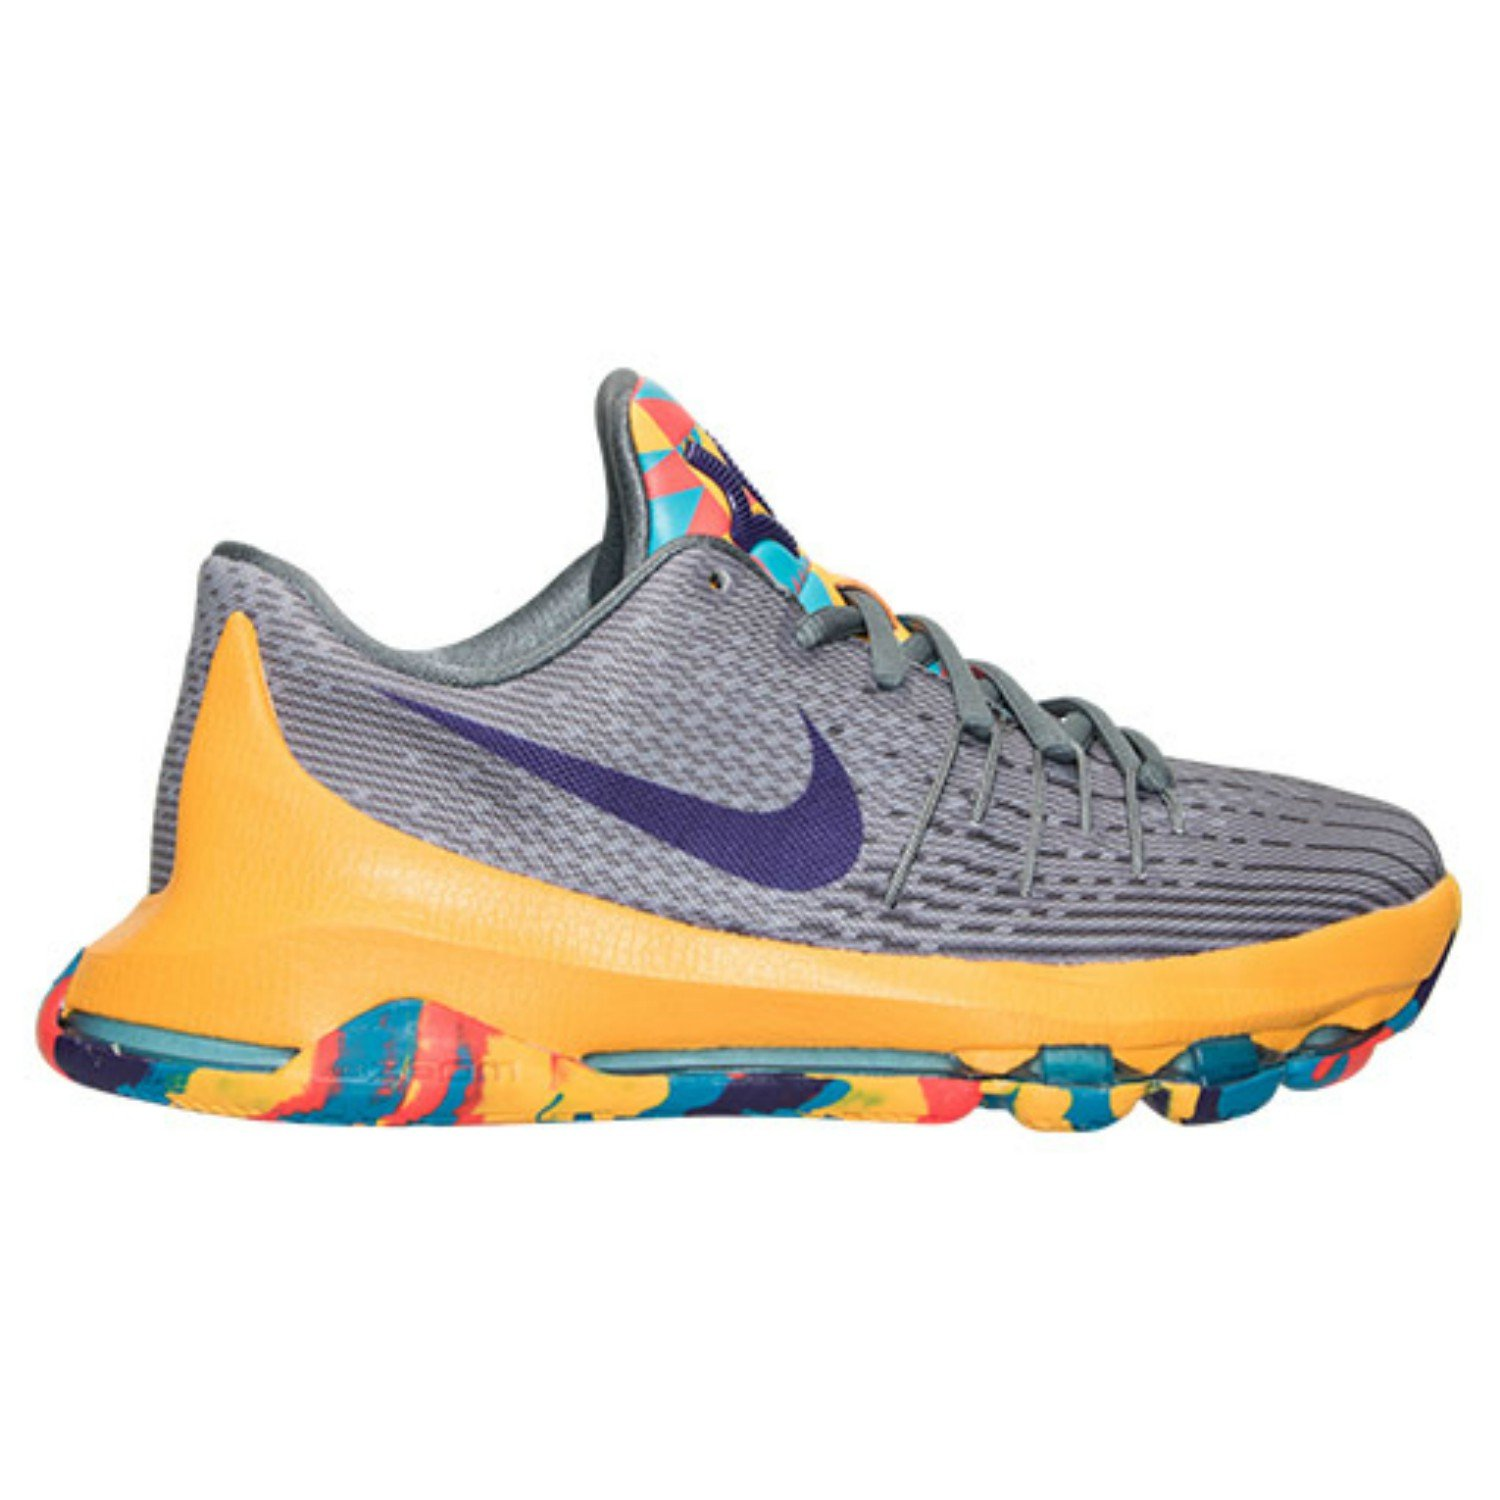 half off 26b63 a6ee1 Amazon.com   Nike KD 8 (GS) Grey Yellow Kevin Durant Basketball Unisex  Youth Size 4.5   Basketball